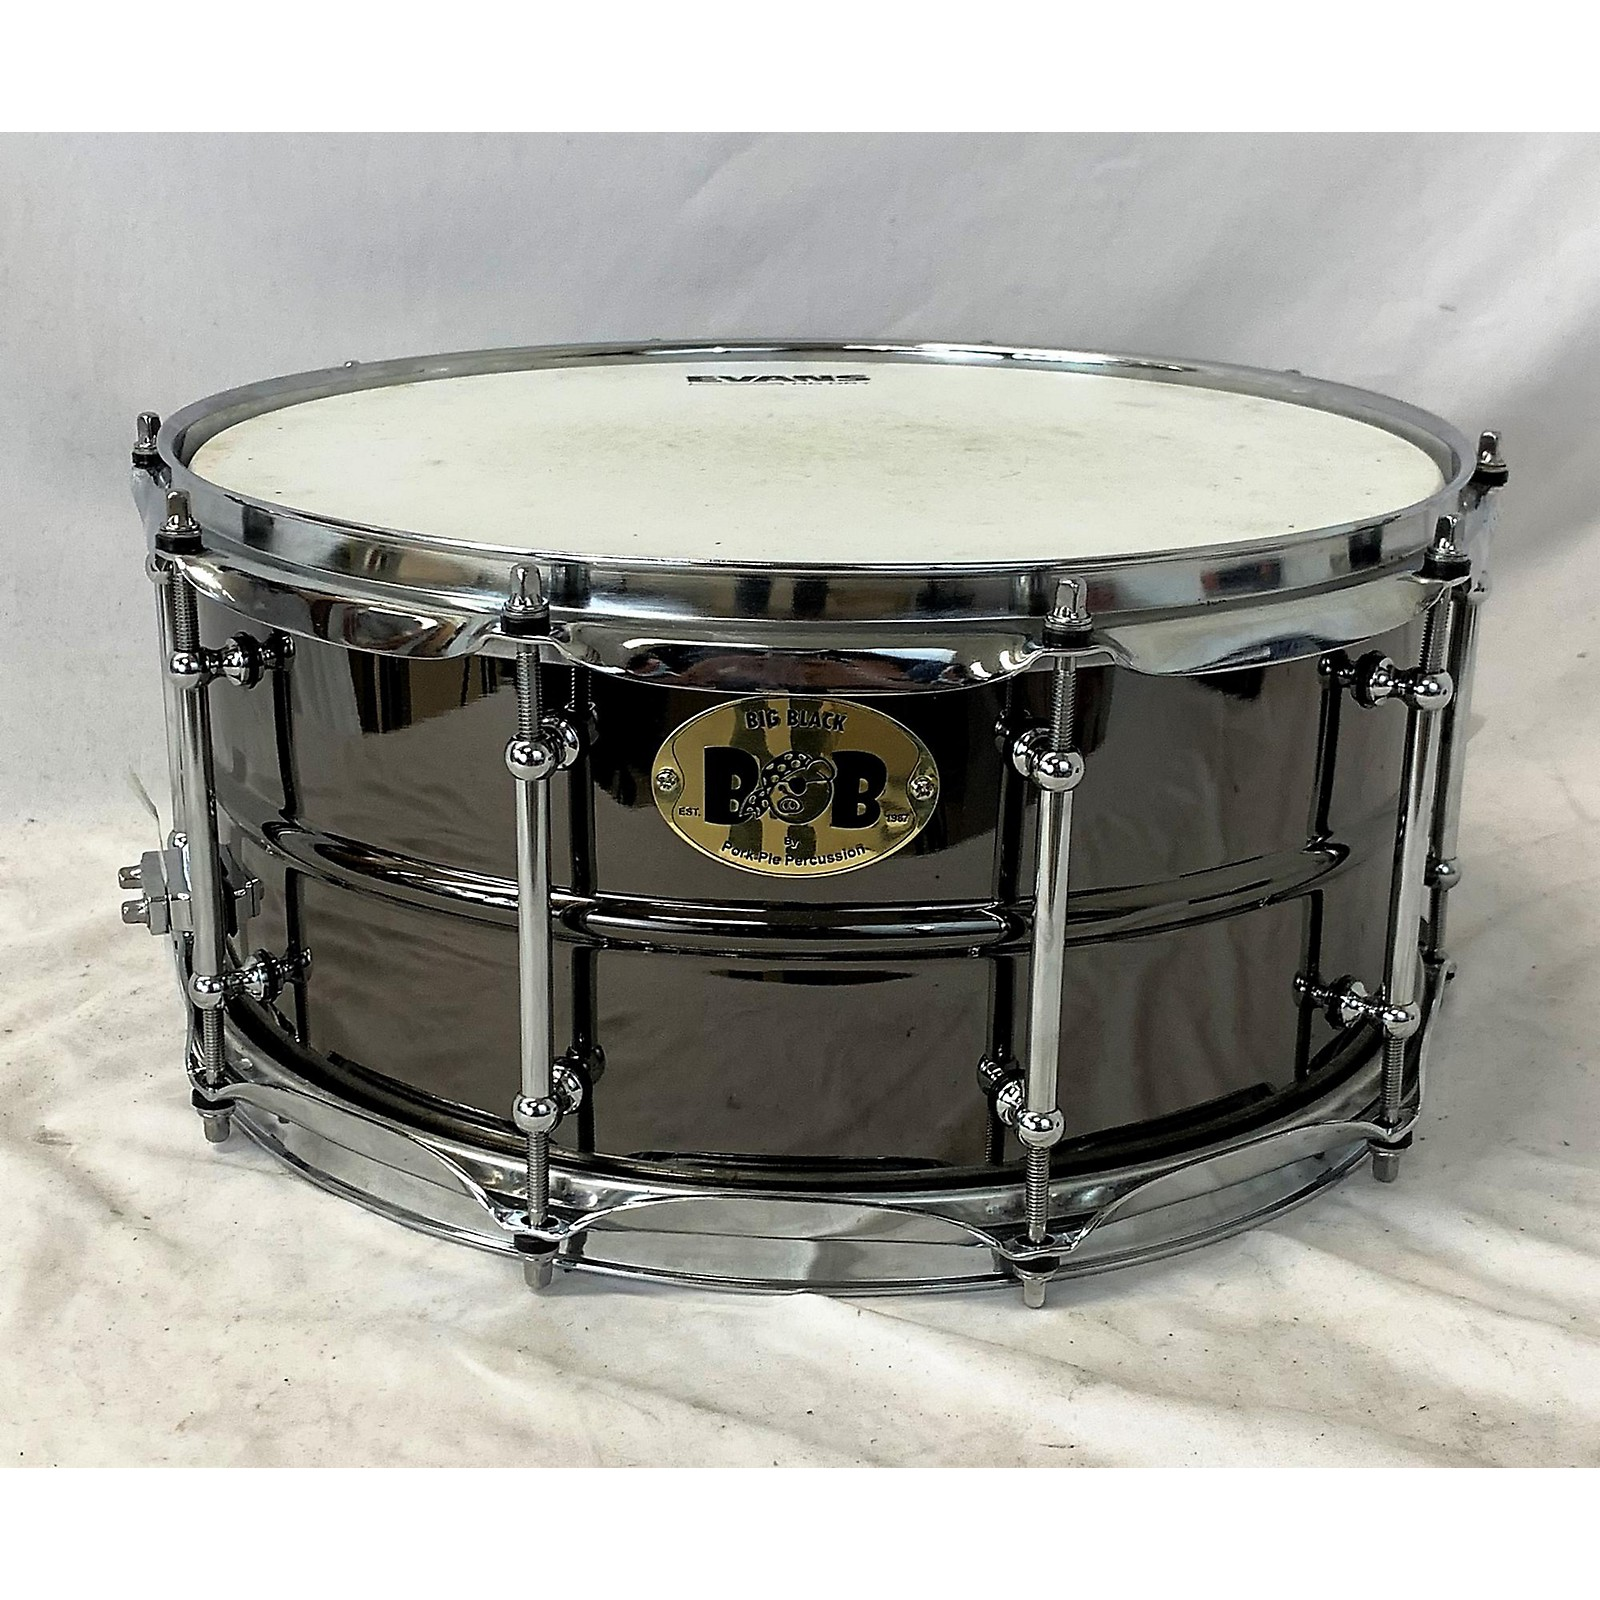 Pork Pie 14X6.5 Big Black BOB Brass Snare Drum